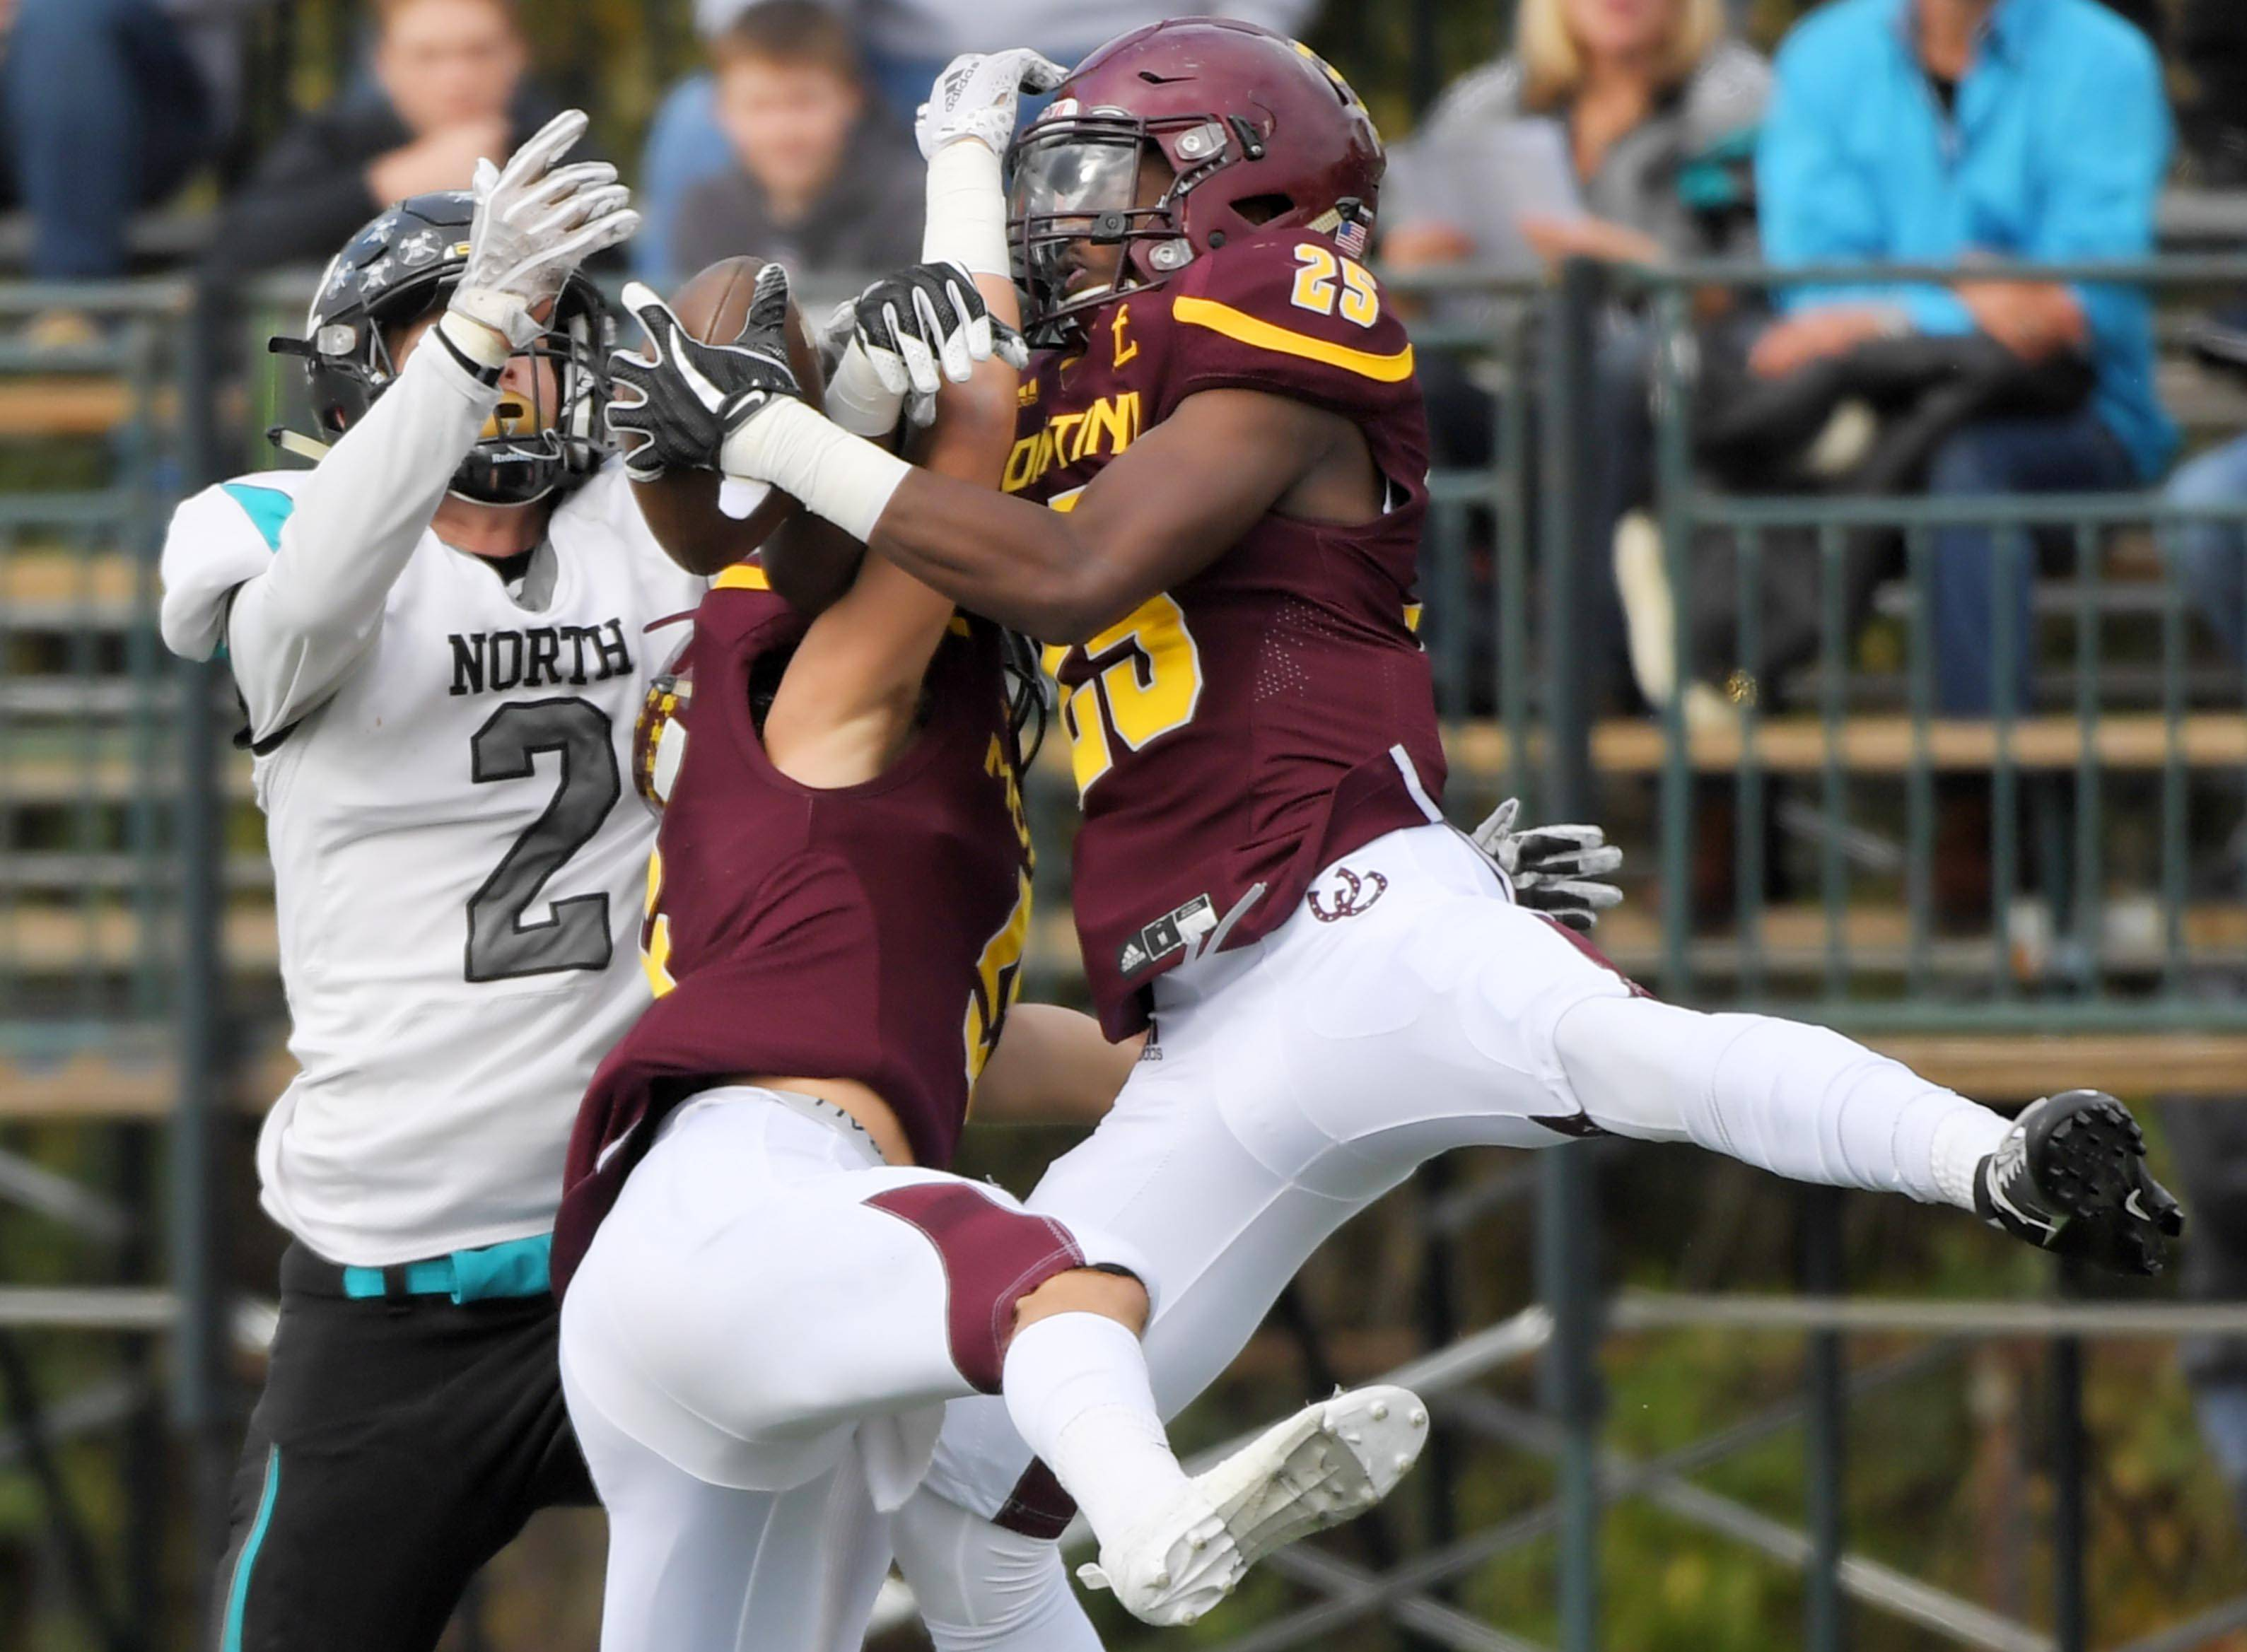 Montini's Jermari Harris intercepts a pass for Woodstock North's Carter Coalson as Montini's Ray Wojkovich also defends in a playoff football game in Lombard Saturday.